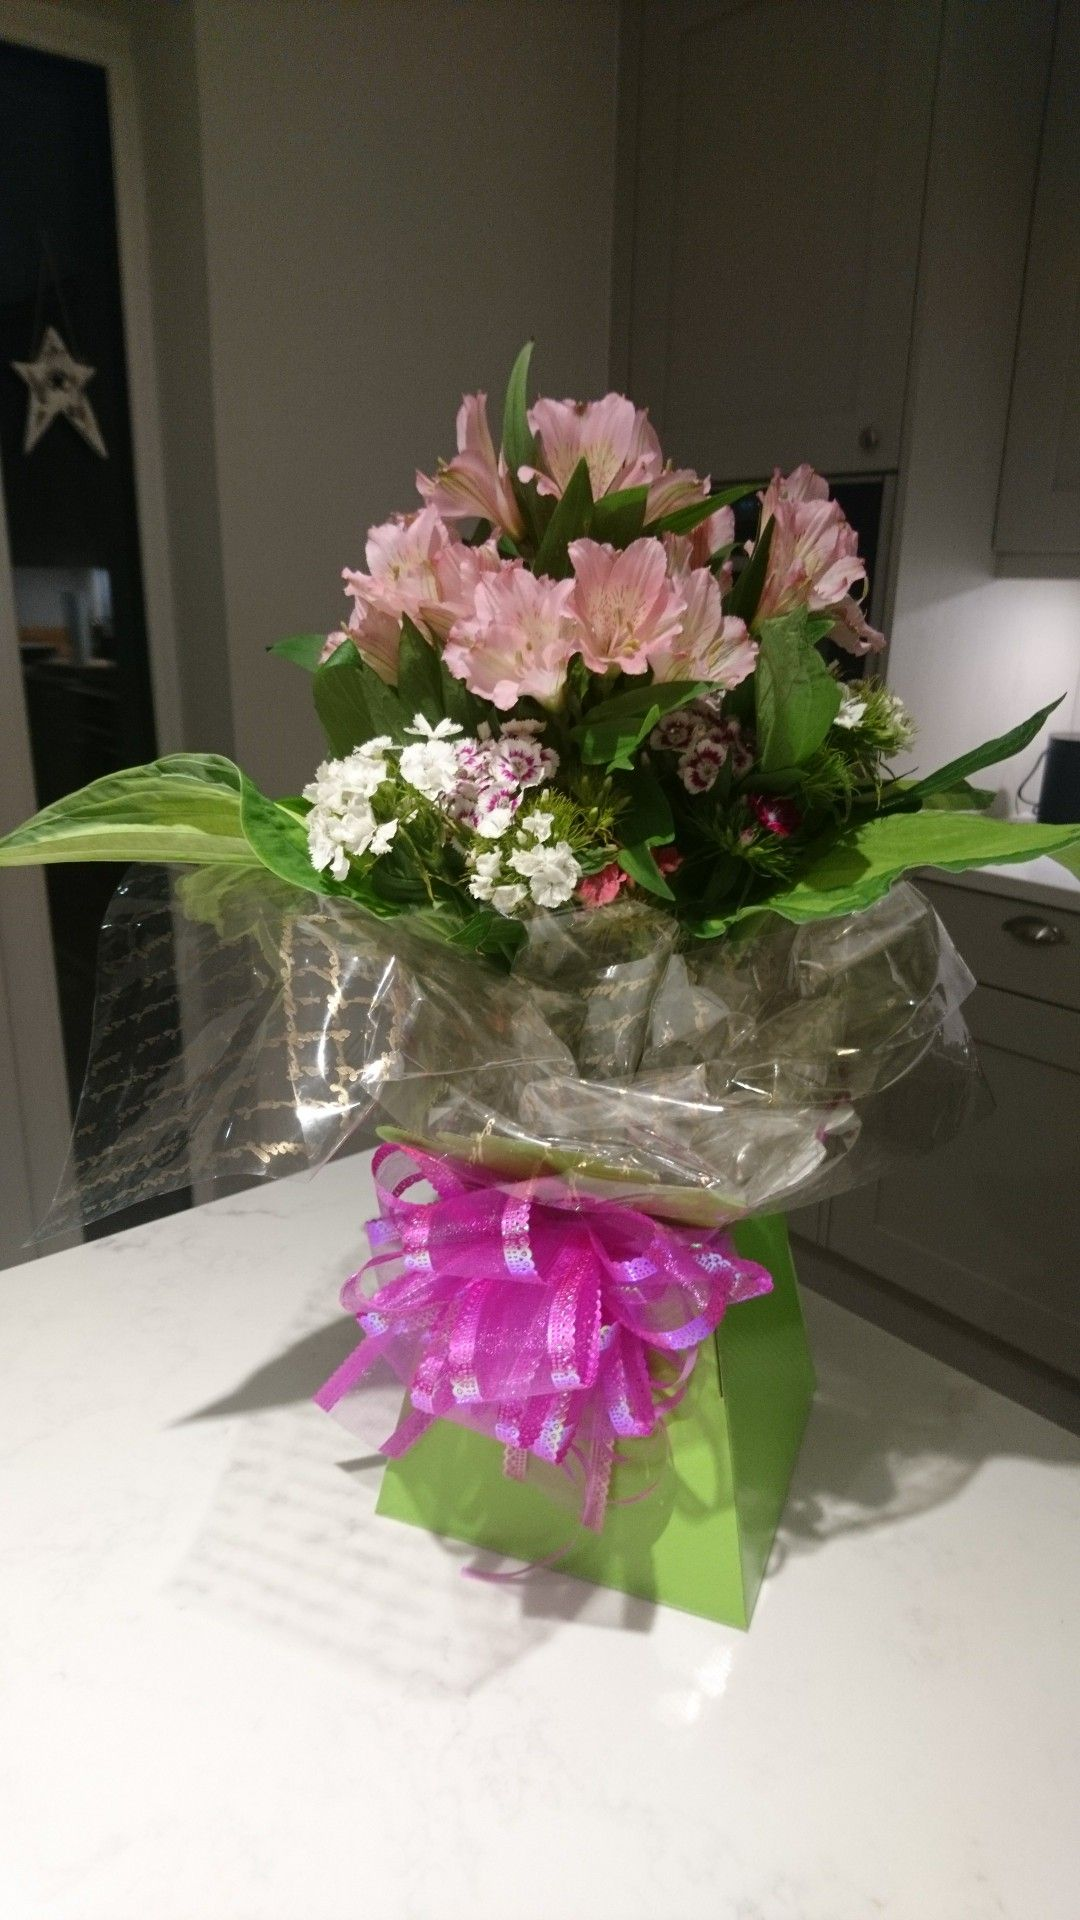 Gift wrapped flowers flowers gift wrapping glass vase